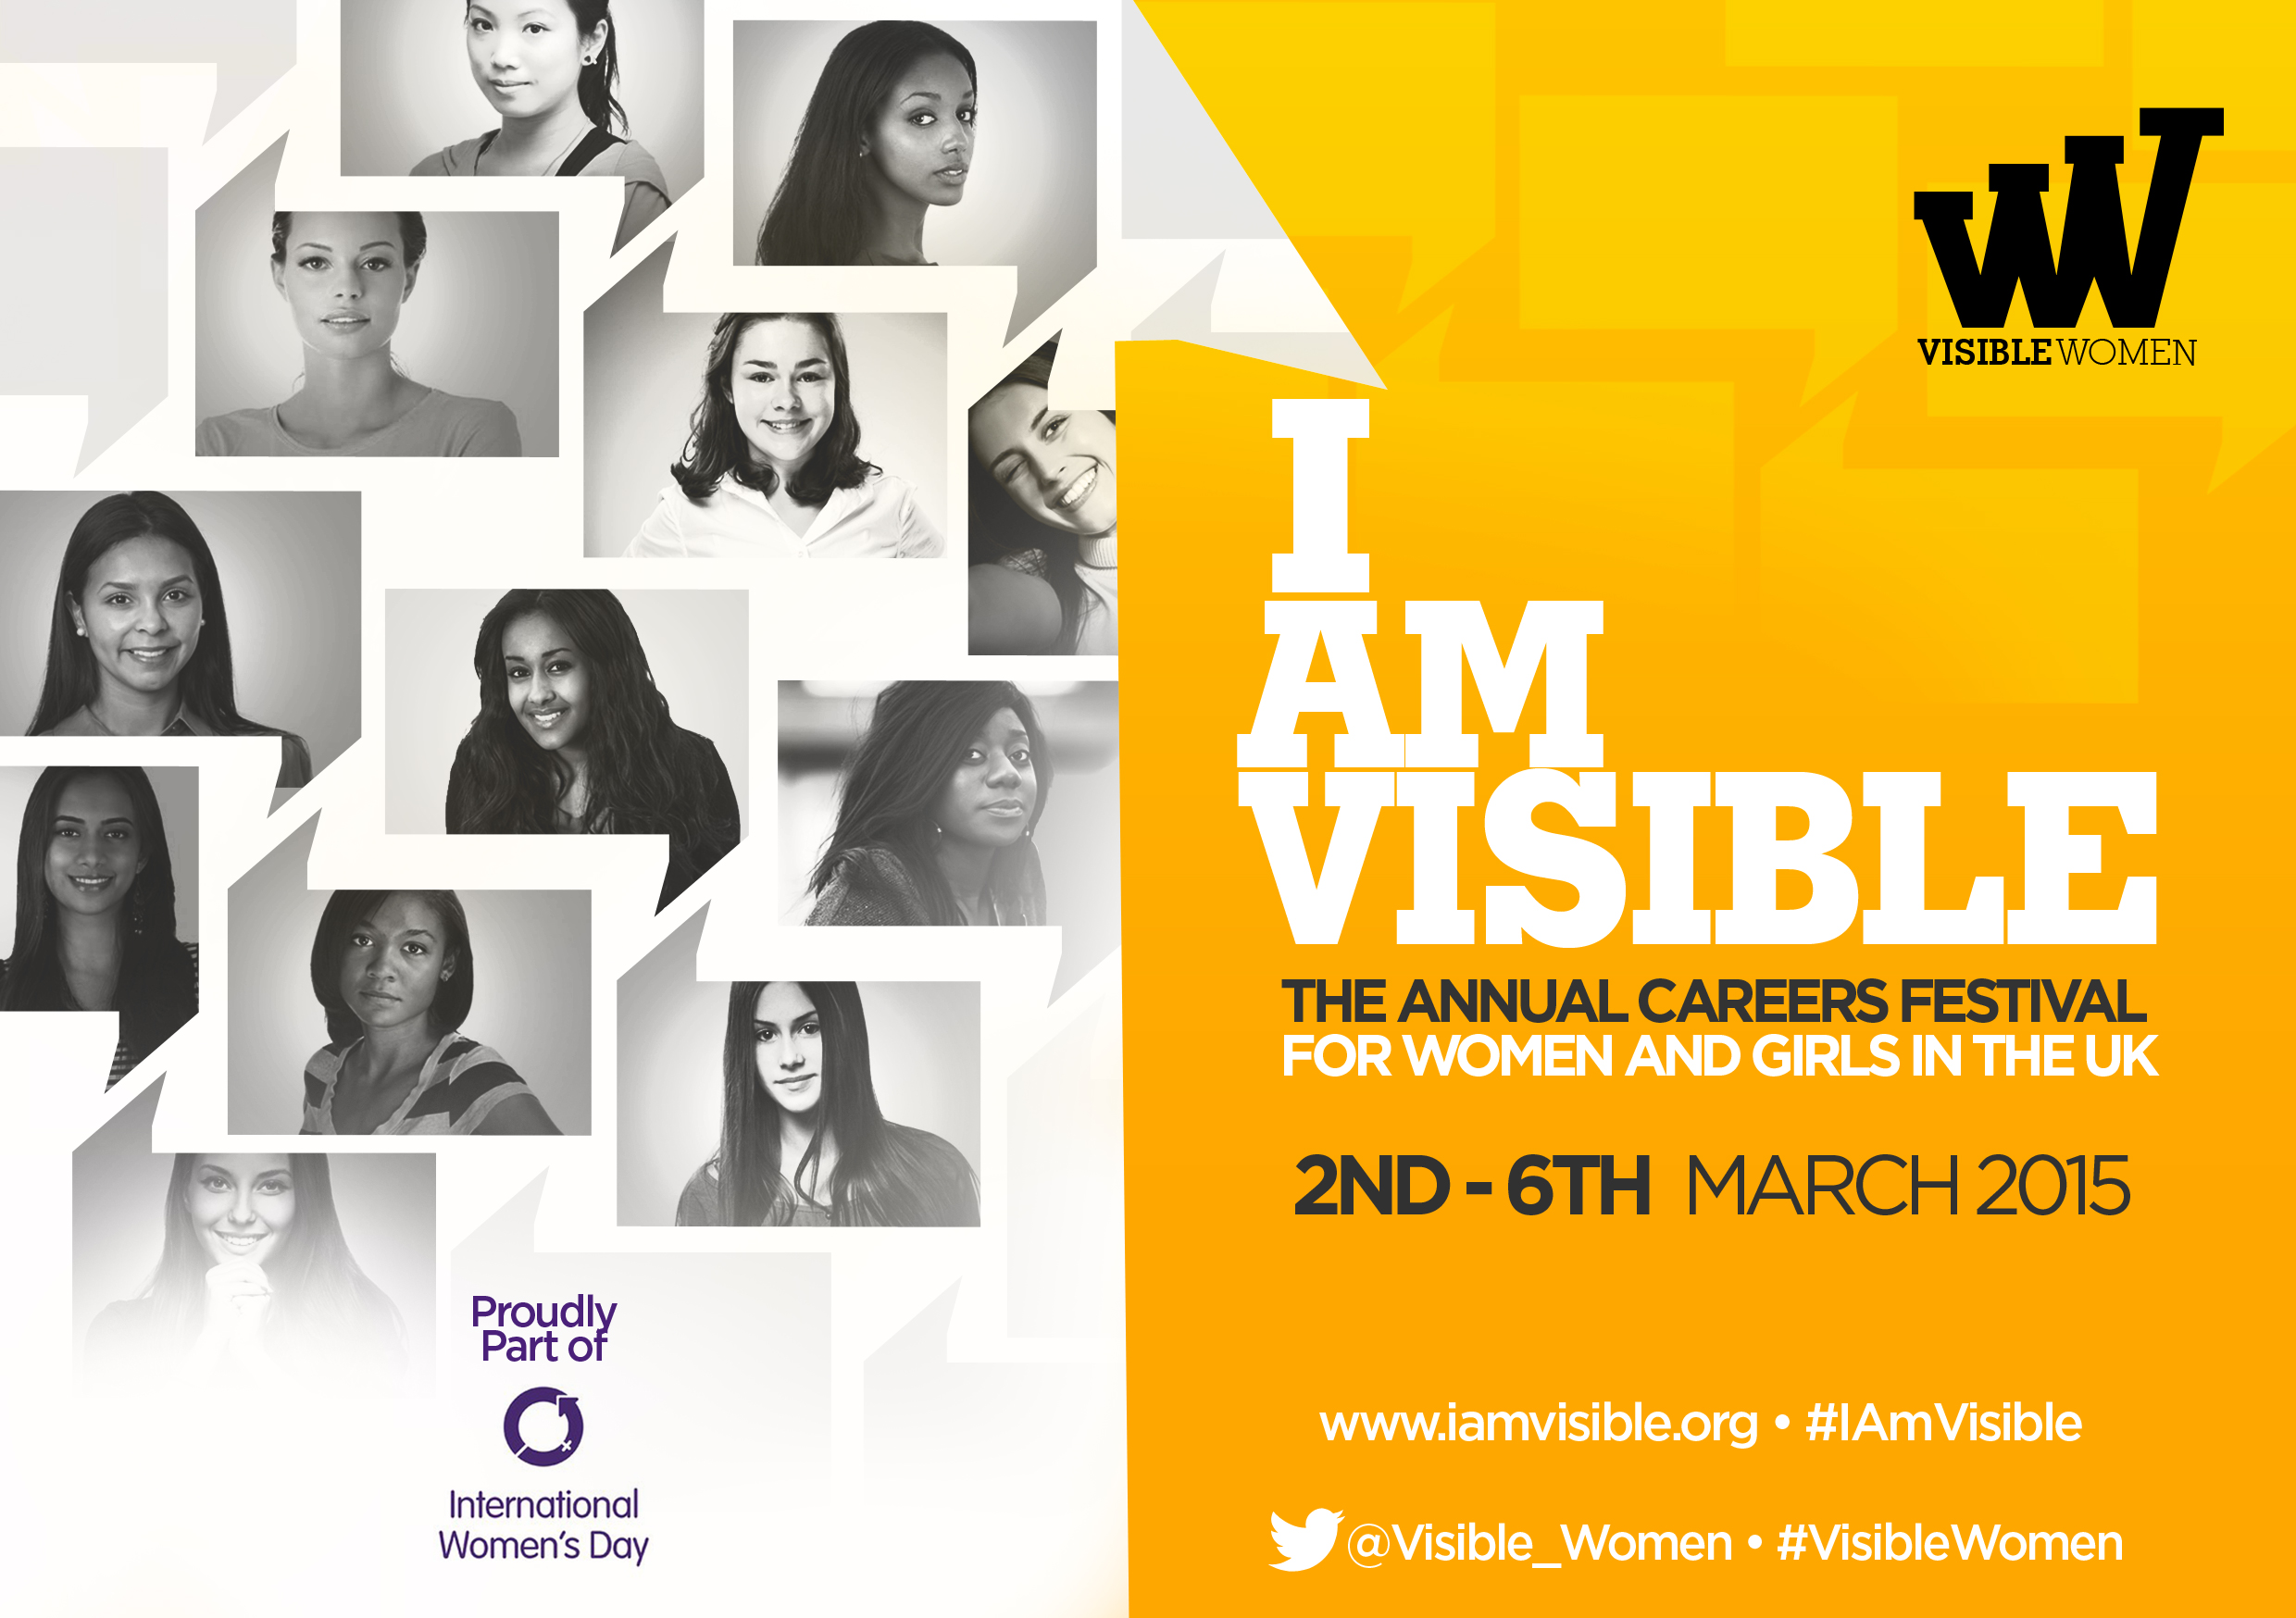 I am visible - The annual careers festival for women and girls in the UK. 2 - 6 March 2015.